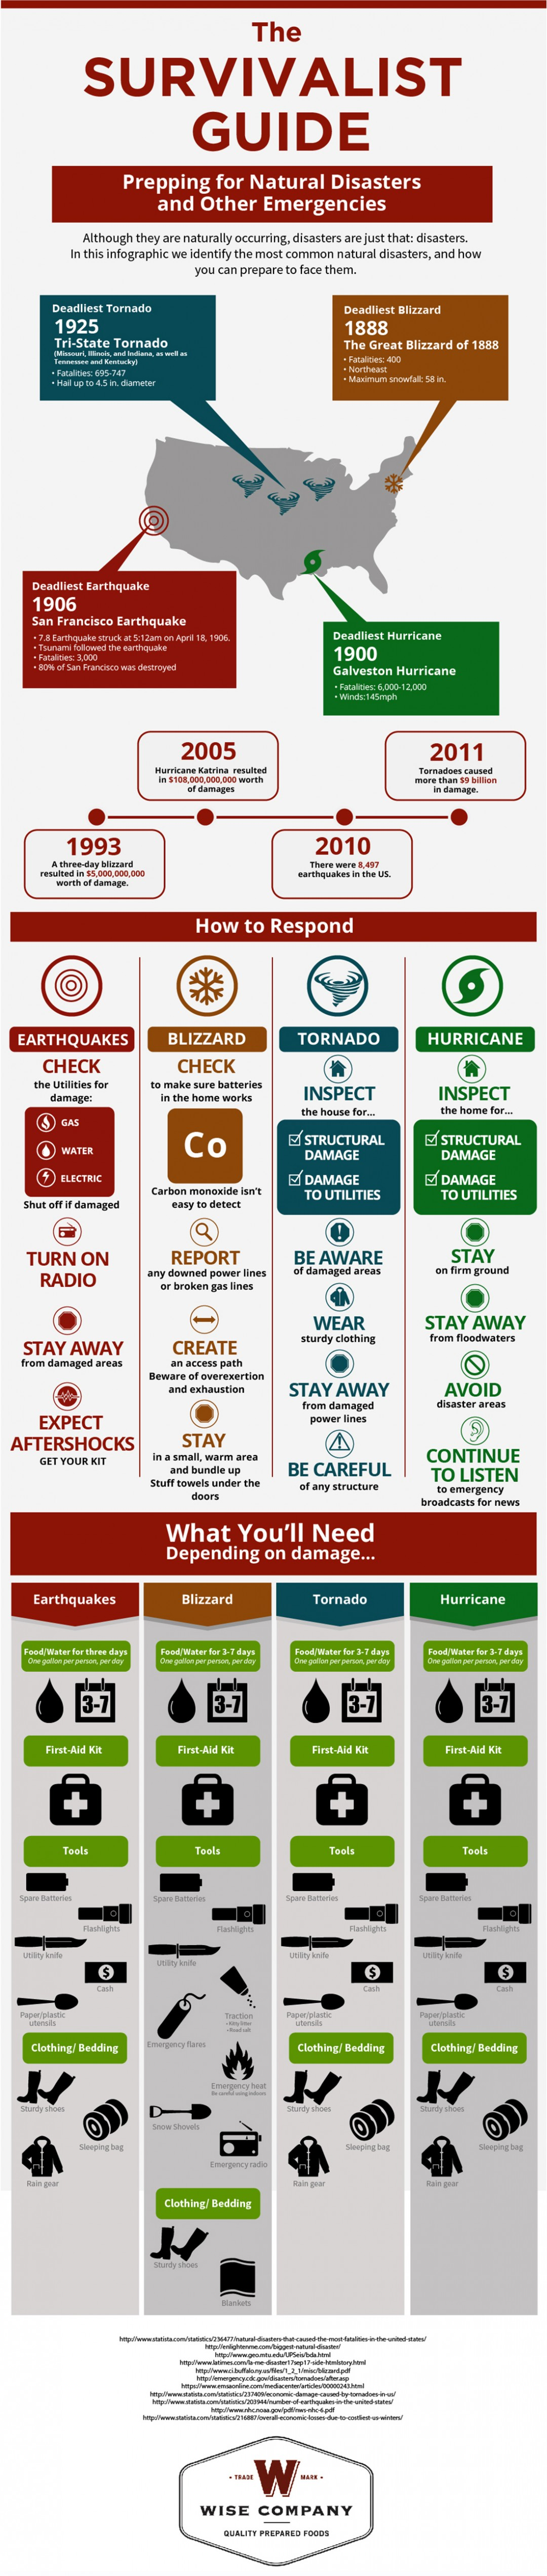 importance of being informed about natural disasters